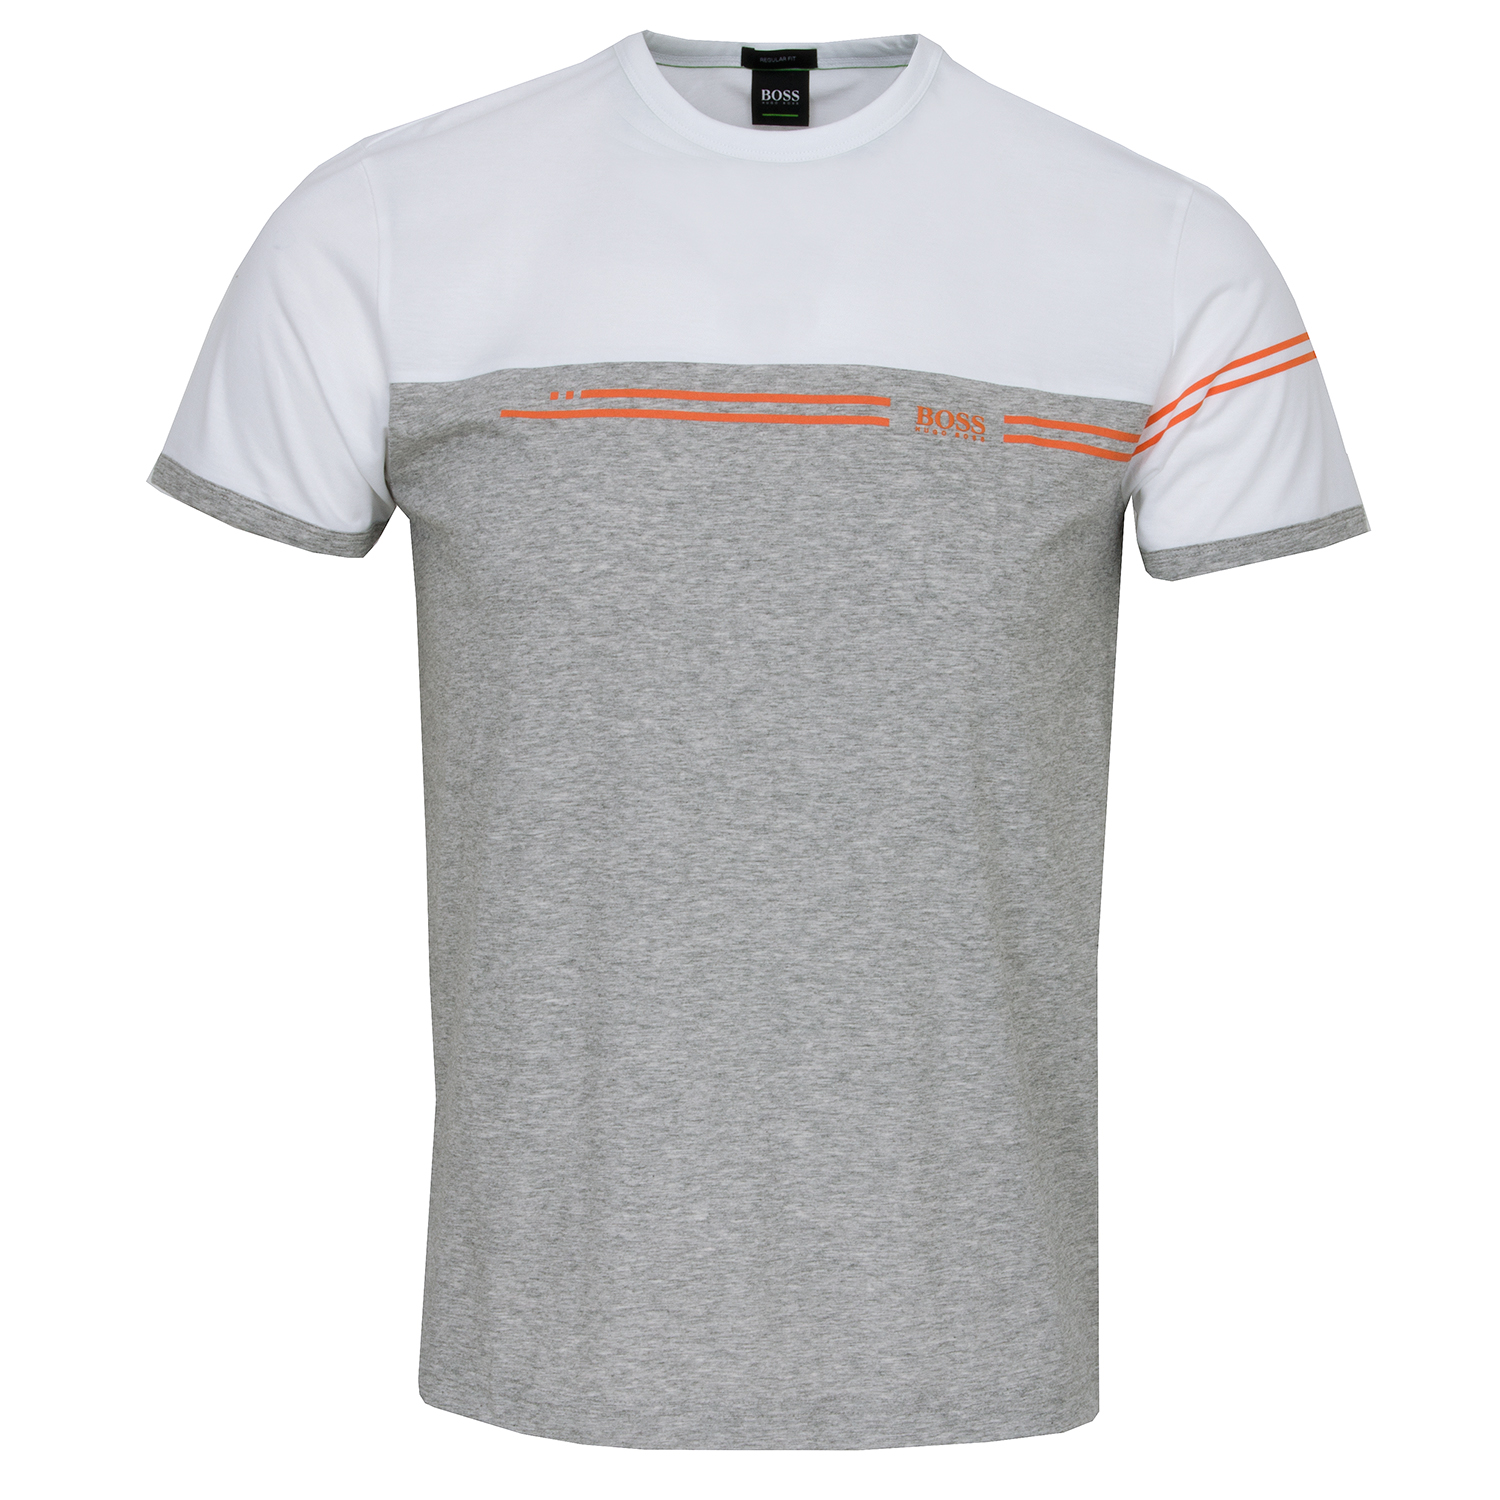 4af22ed64 BOSS ATHLEISURE Tee 11 T-Shirt White | Scottsdale Golf